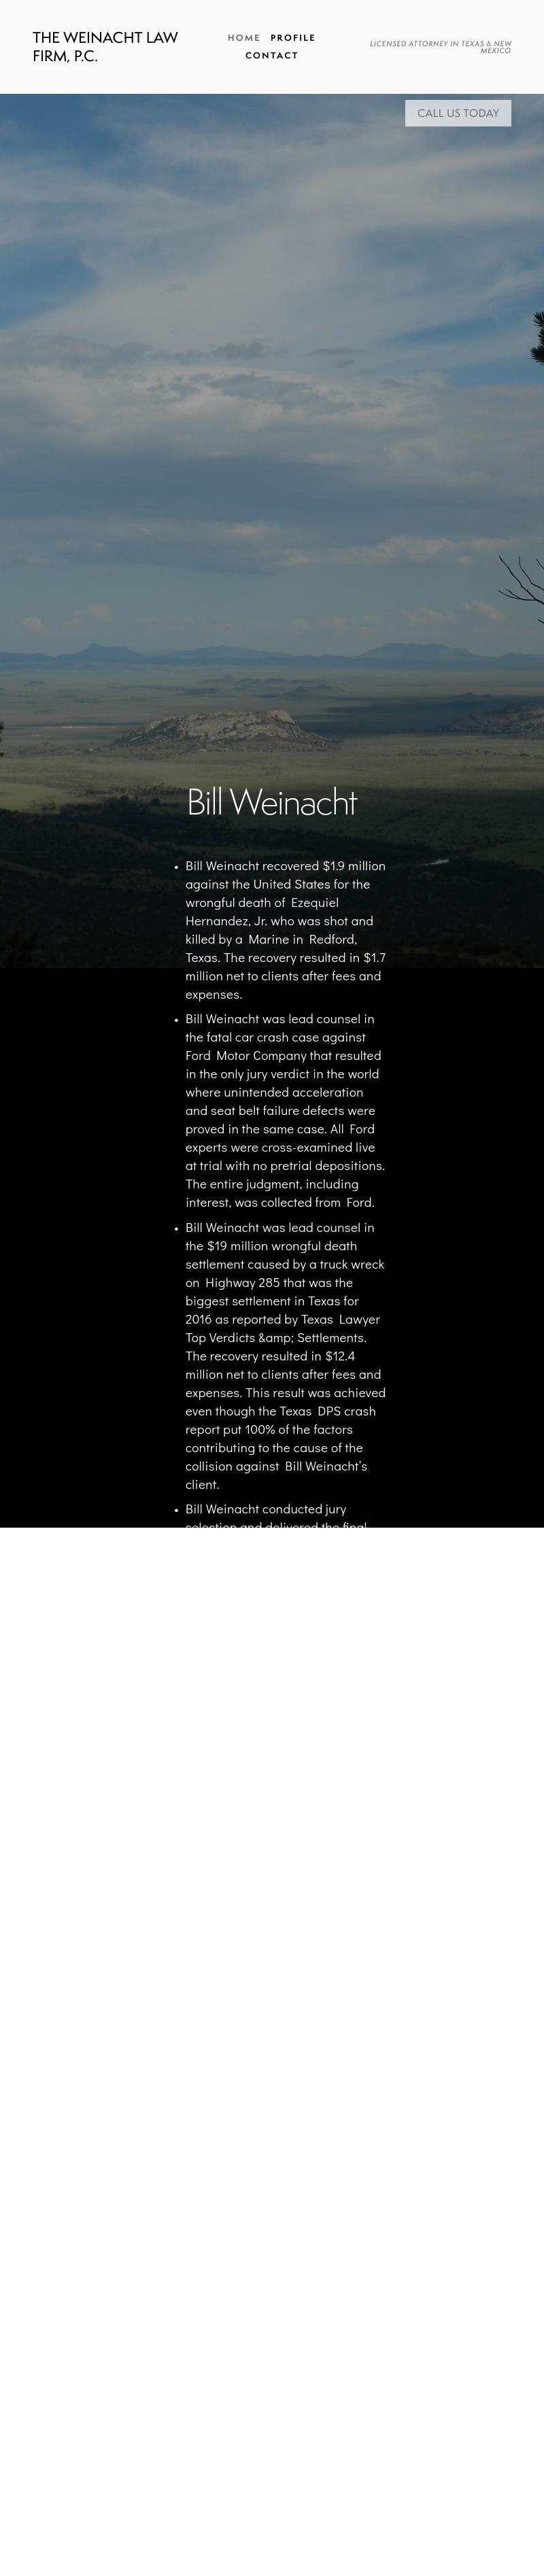 THE WEINACHT LAW FIRM - Pecos TX Lawyers